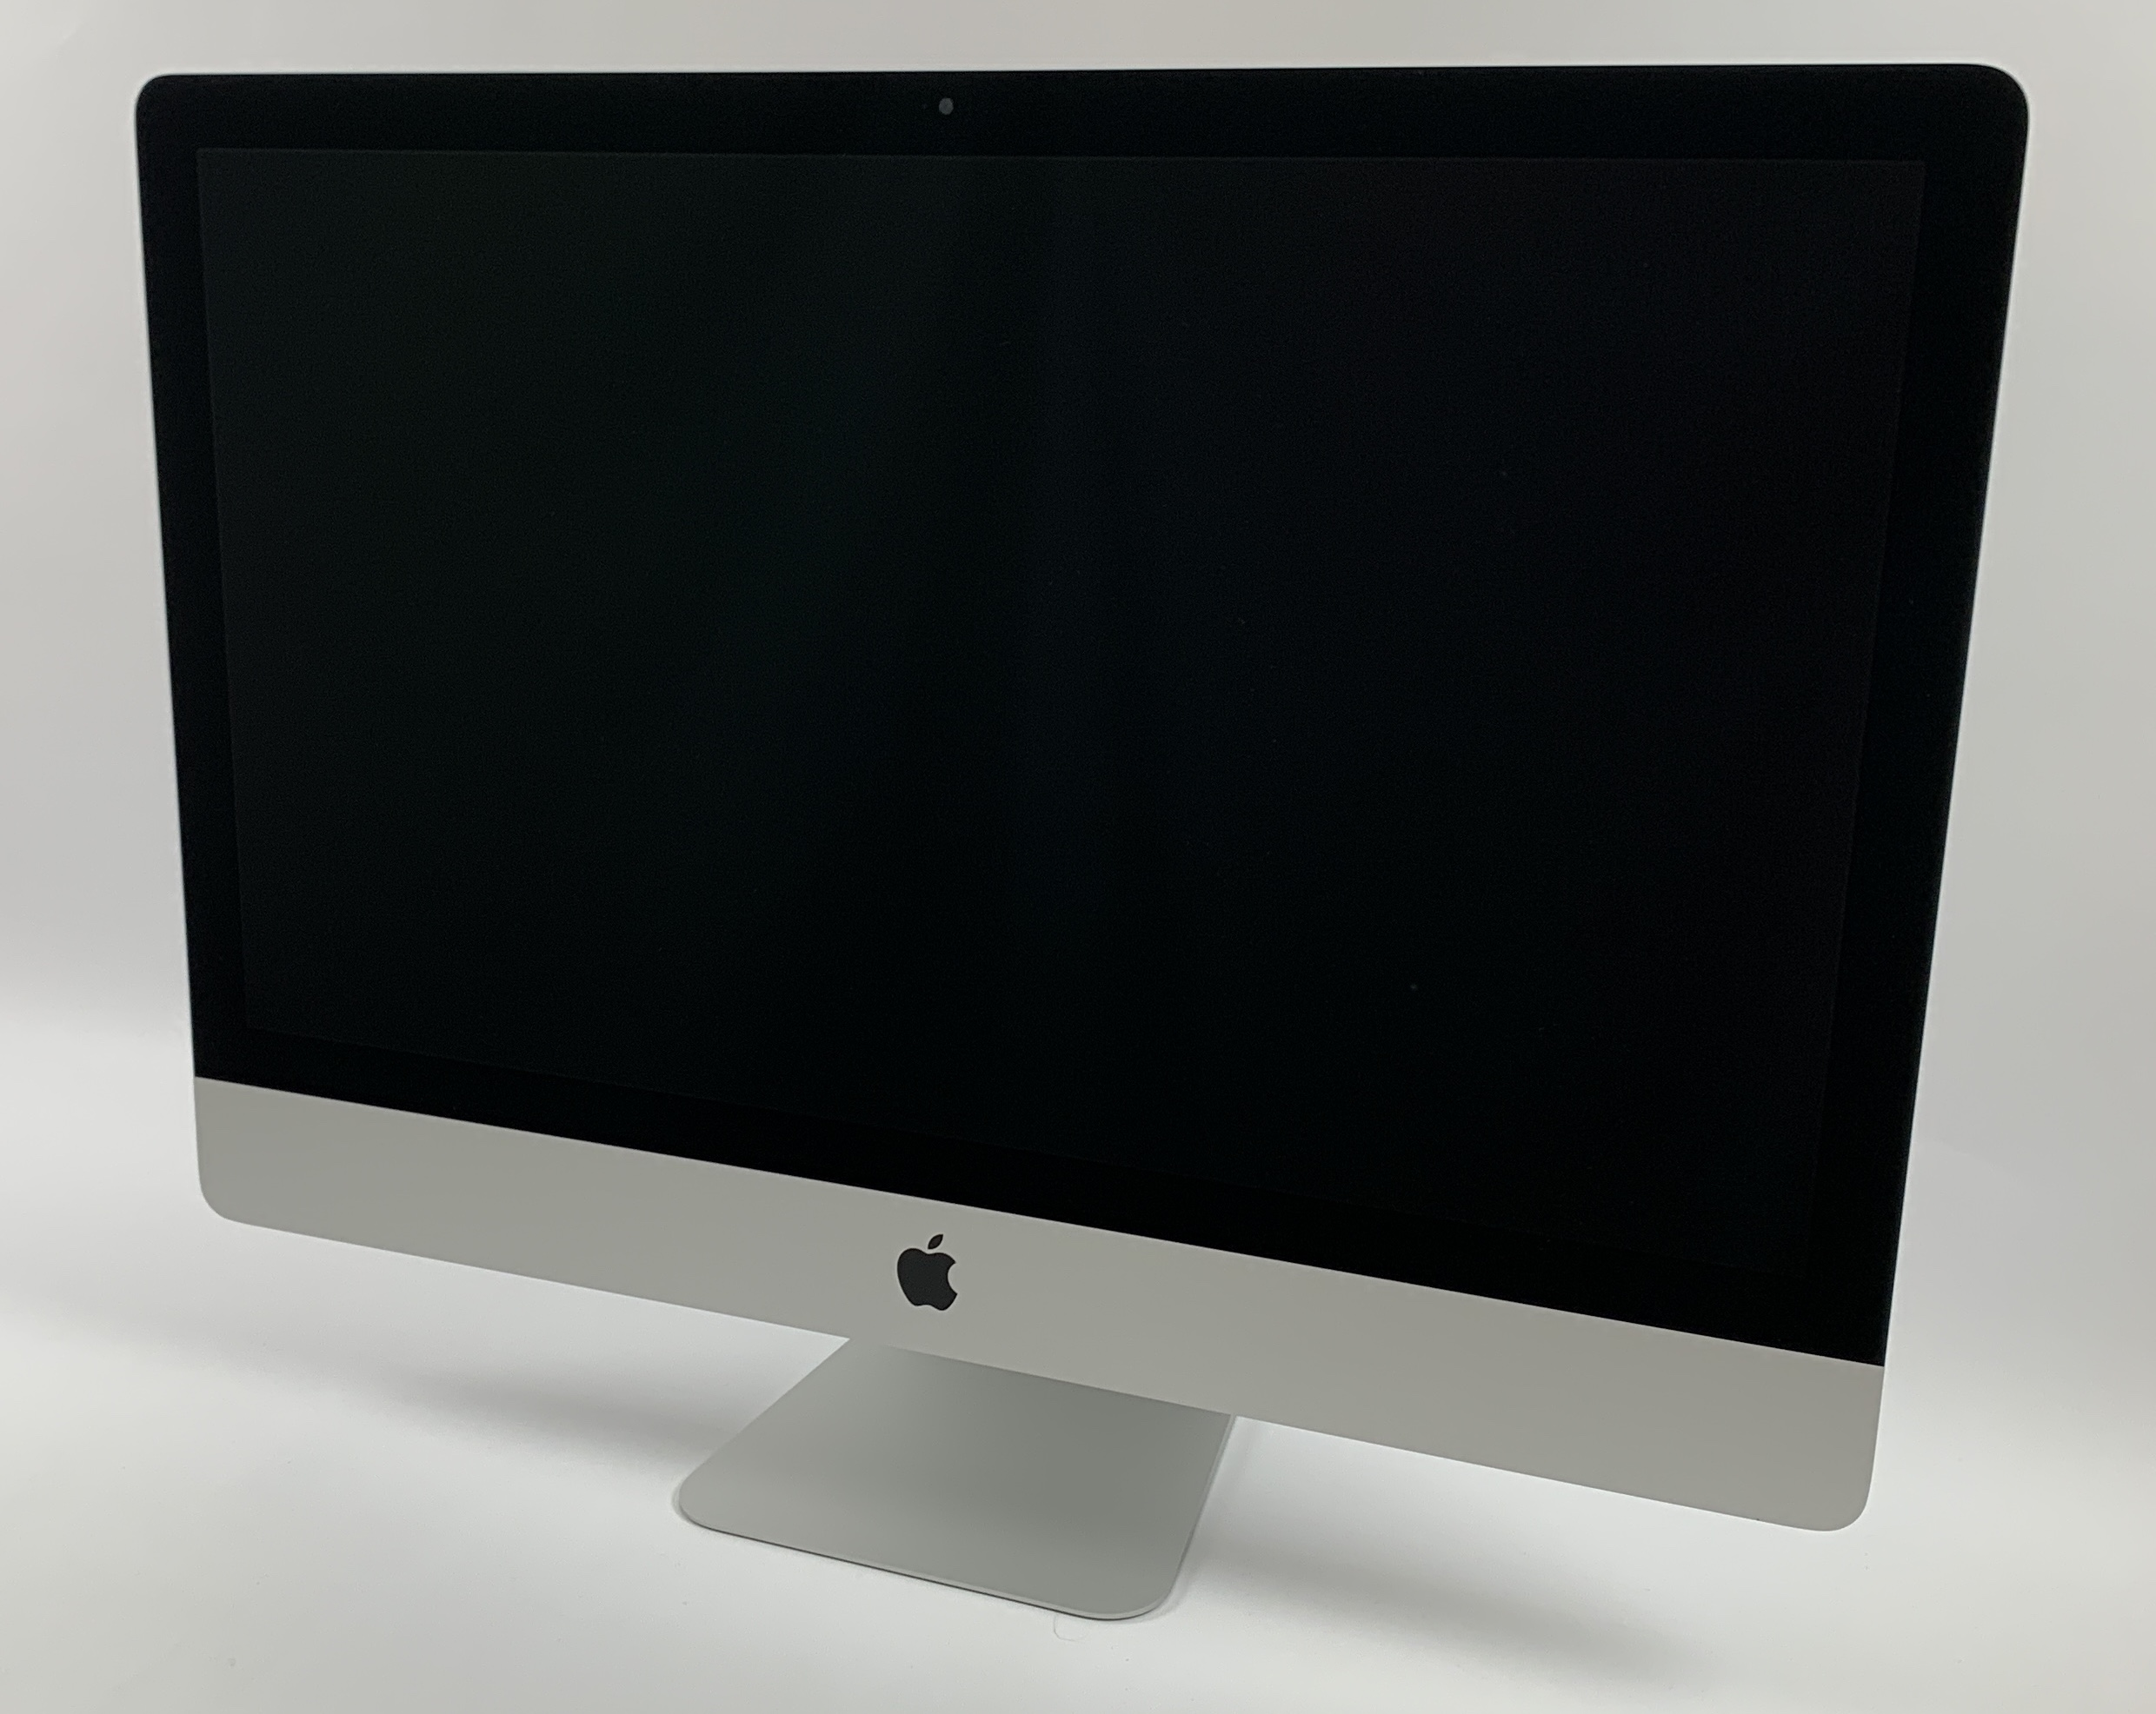 "iMac 27"" Retina 5K Mid 2020 (Intel 6-Core i5 3.3 GHz 128 GB RAM 512 GB SSD), Intel 6-Core i5 3.3 GHz, 128 GB RAM, 512 GB SSD, image 1"